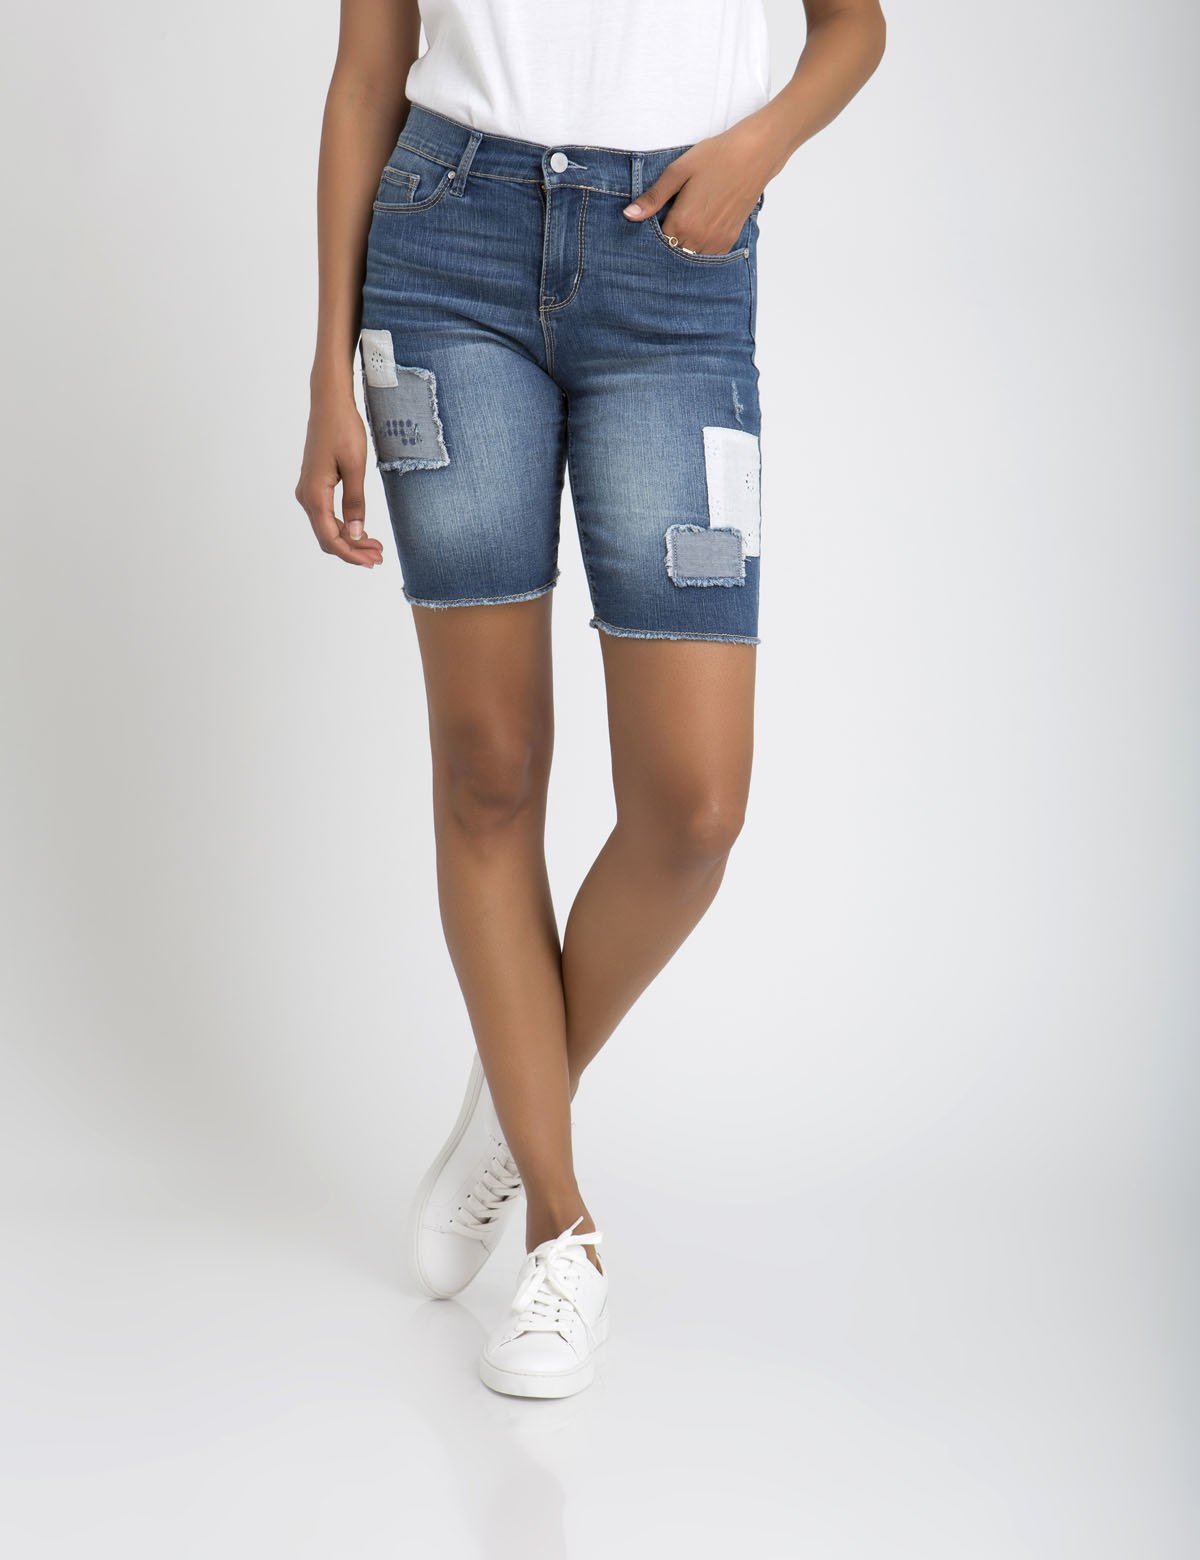 CROCHET PATCHED DENIM SHORTS - U.S. Polo Assn.